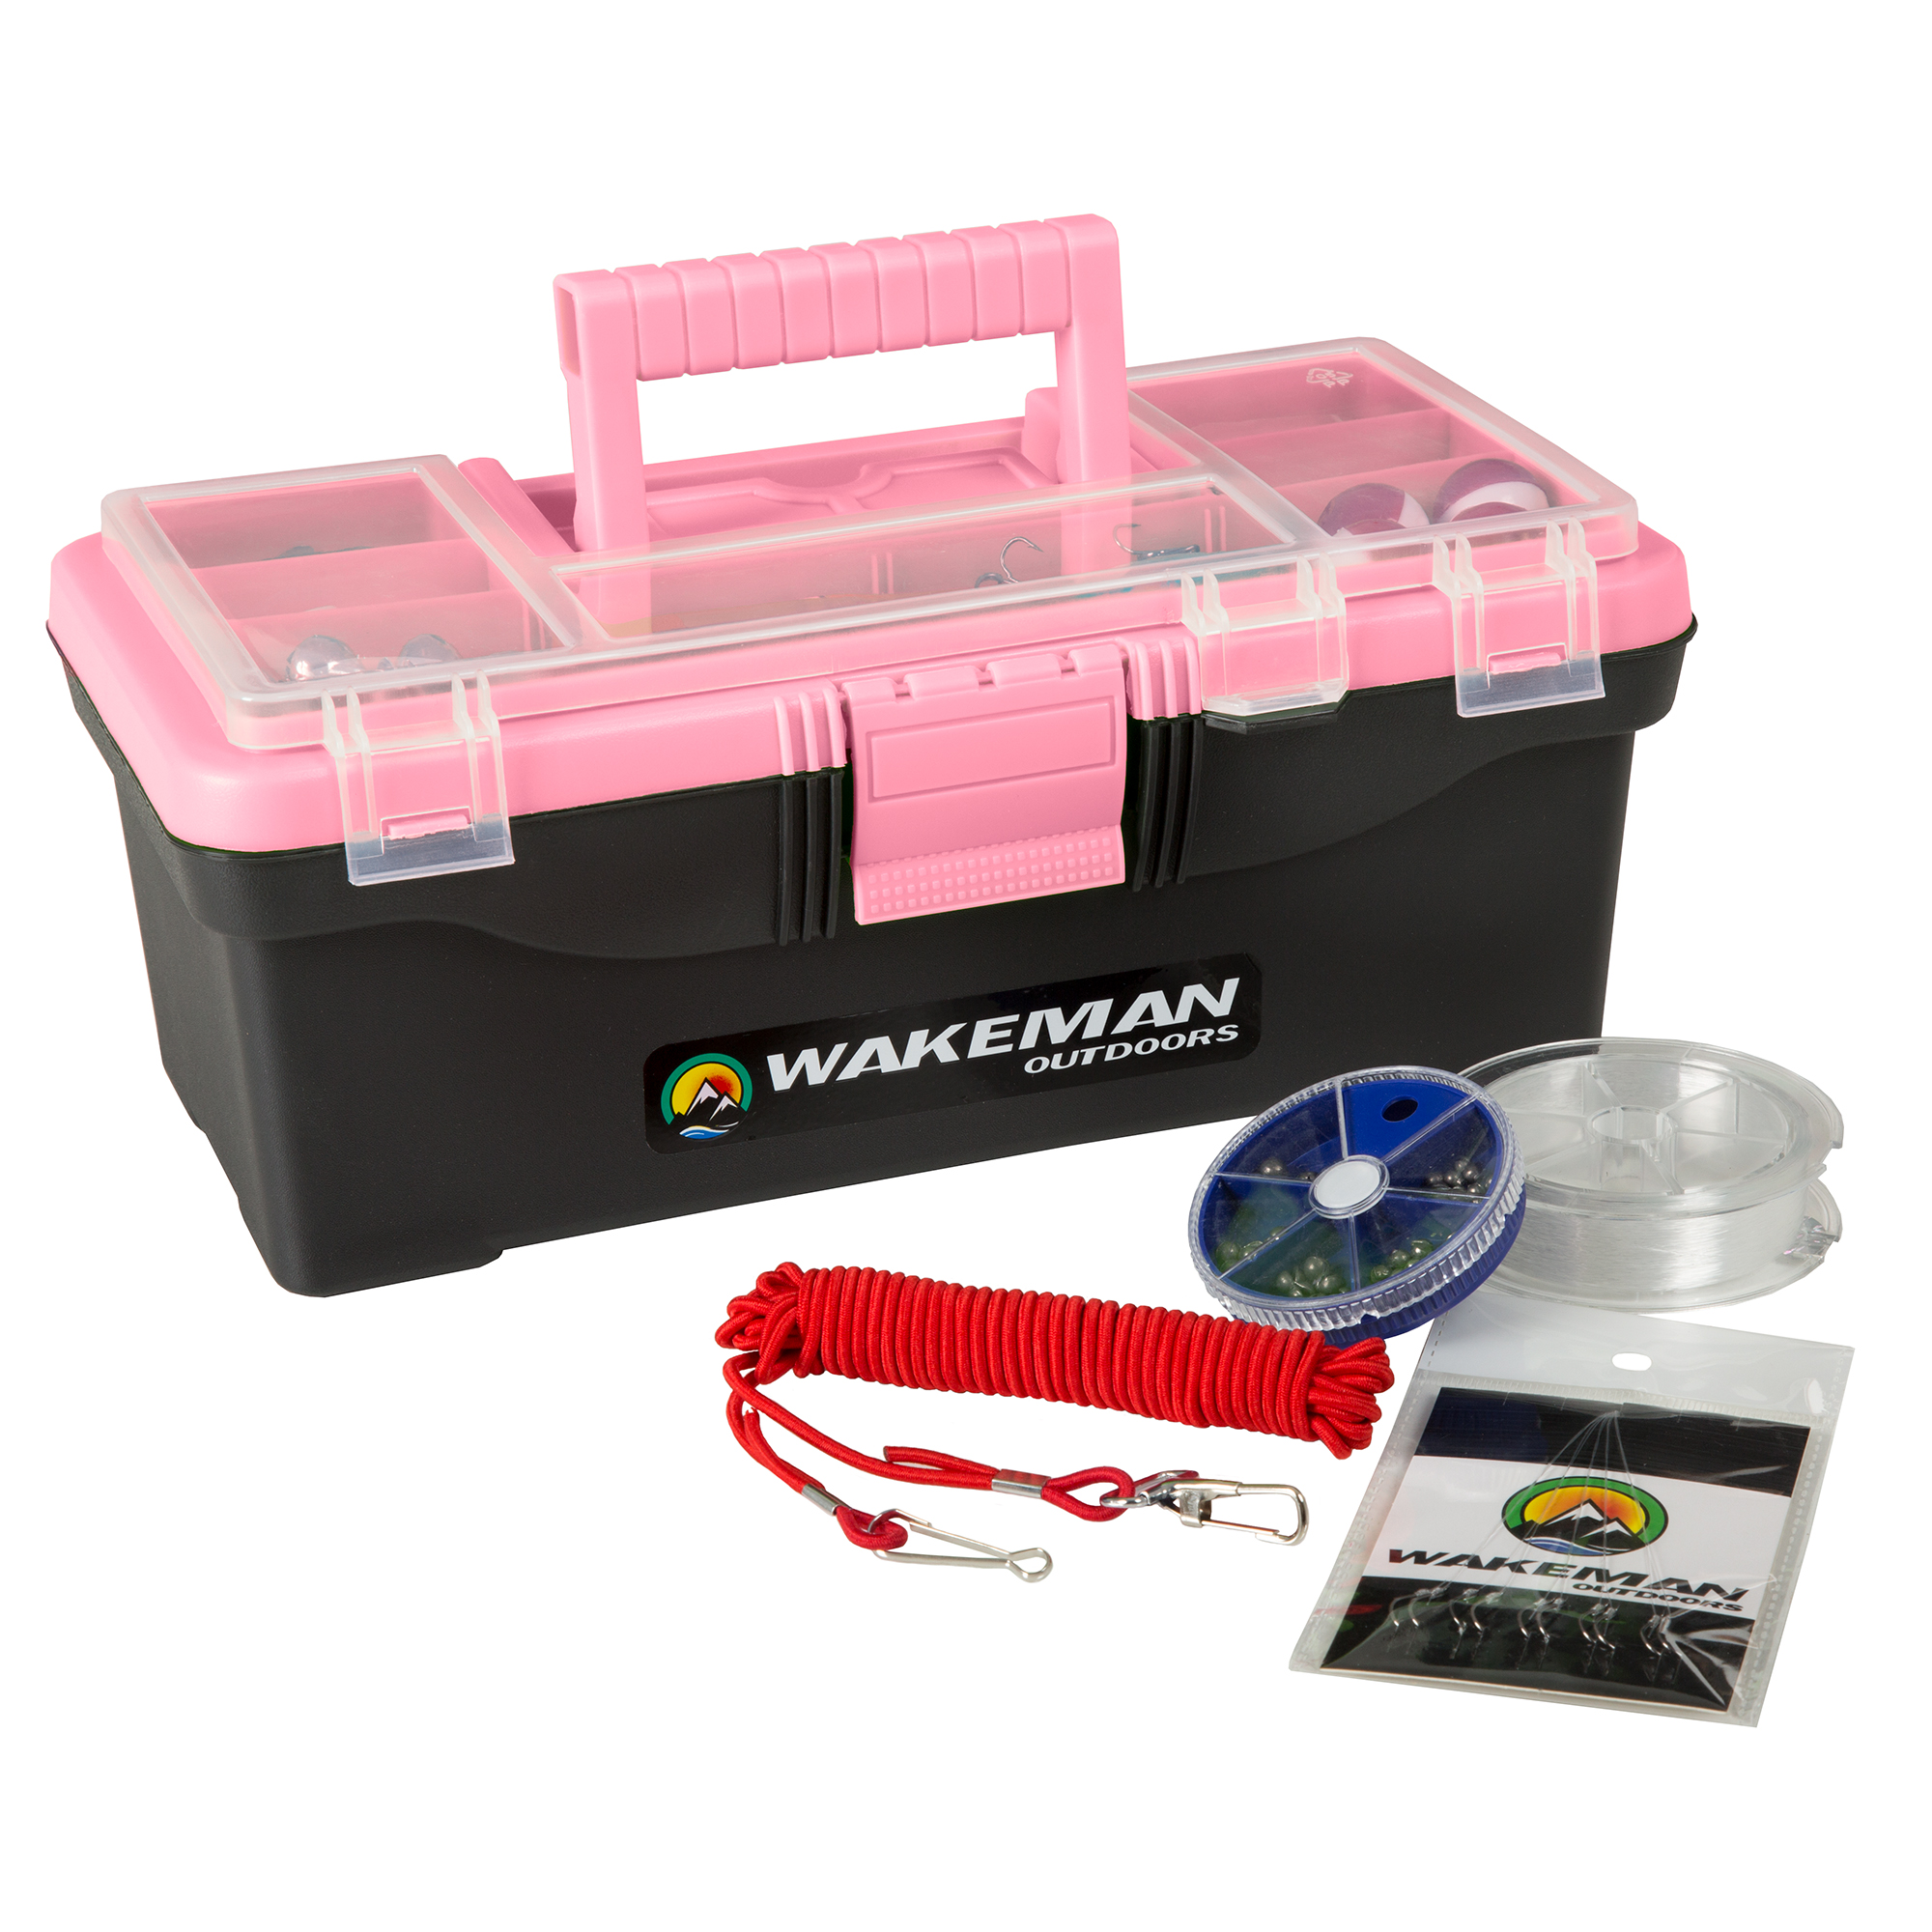 Fishing Single Tray Tackle Box- 55 Piece Tackle Gear Kit Includes Sinkers, Hooks Lures Bobbers Swivels and Fishing Line By Wakeman Outdoors (Pink)